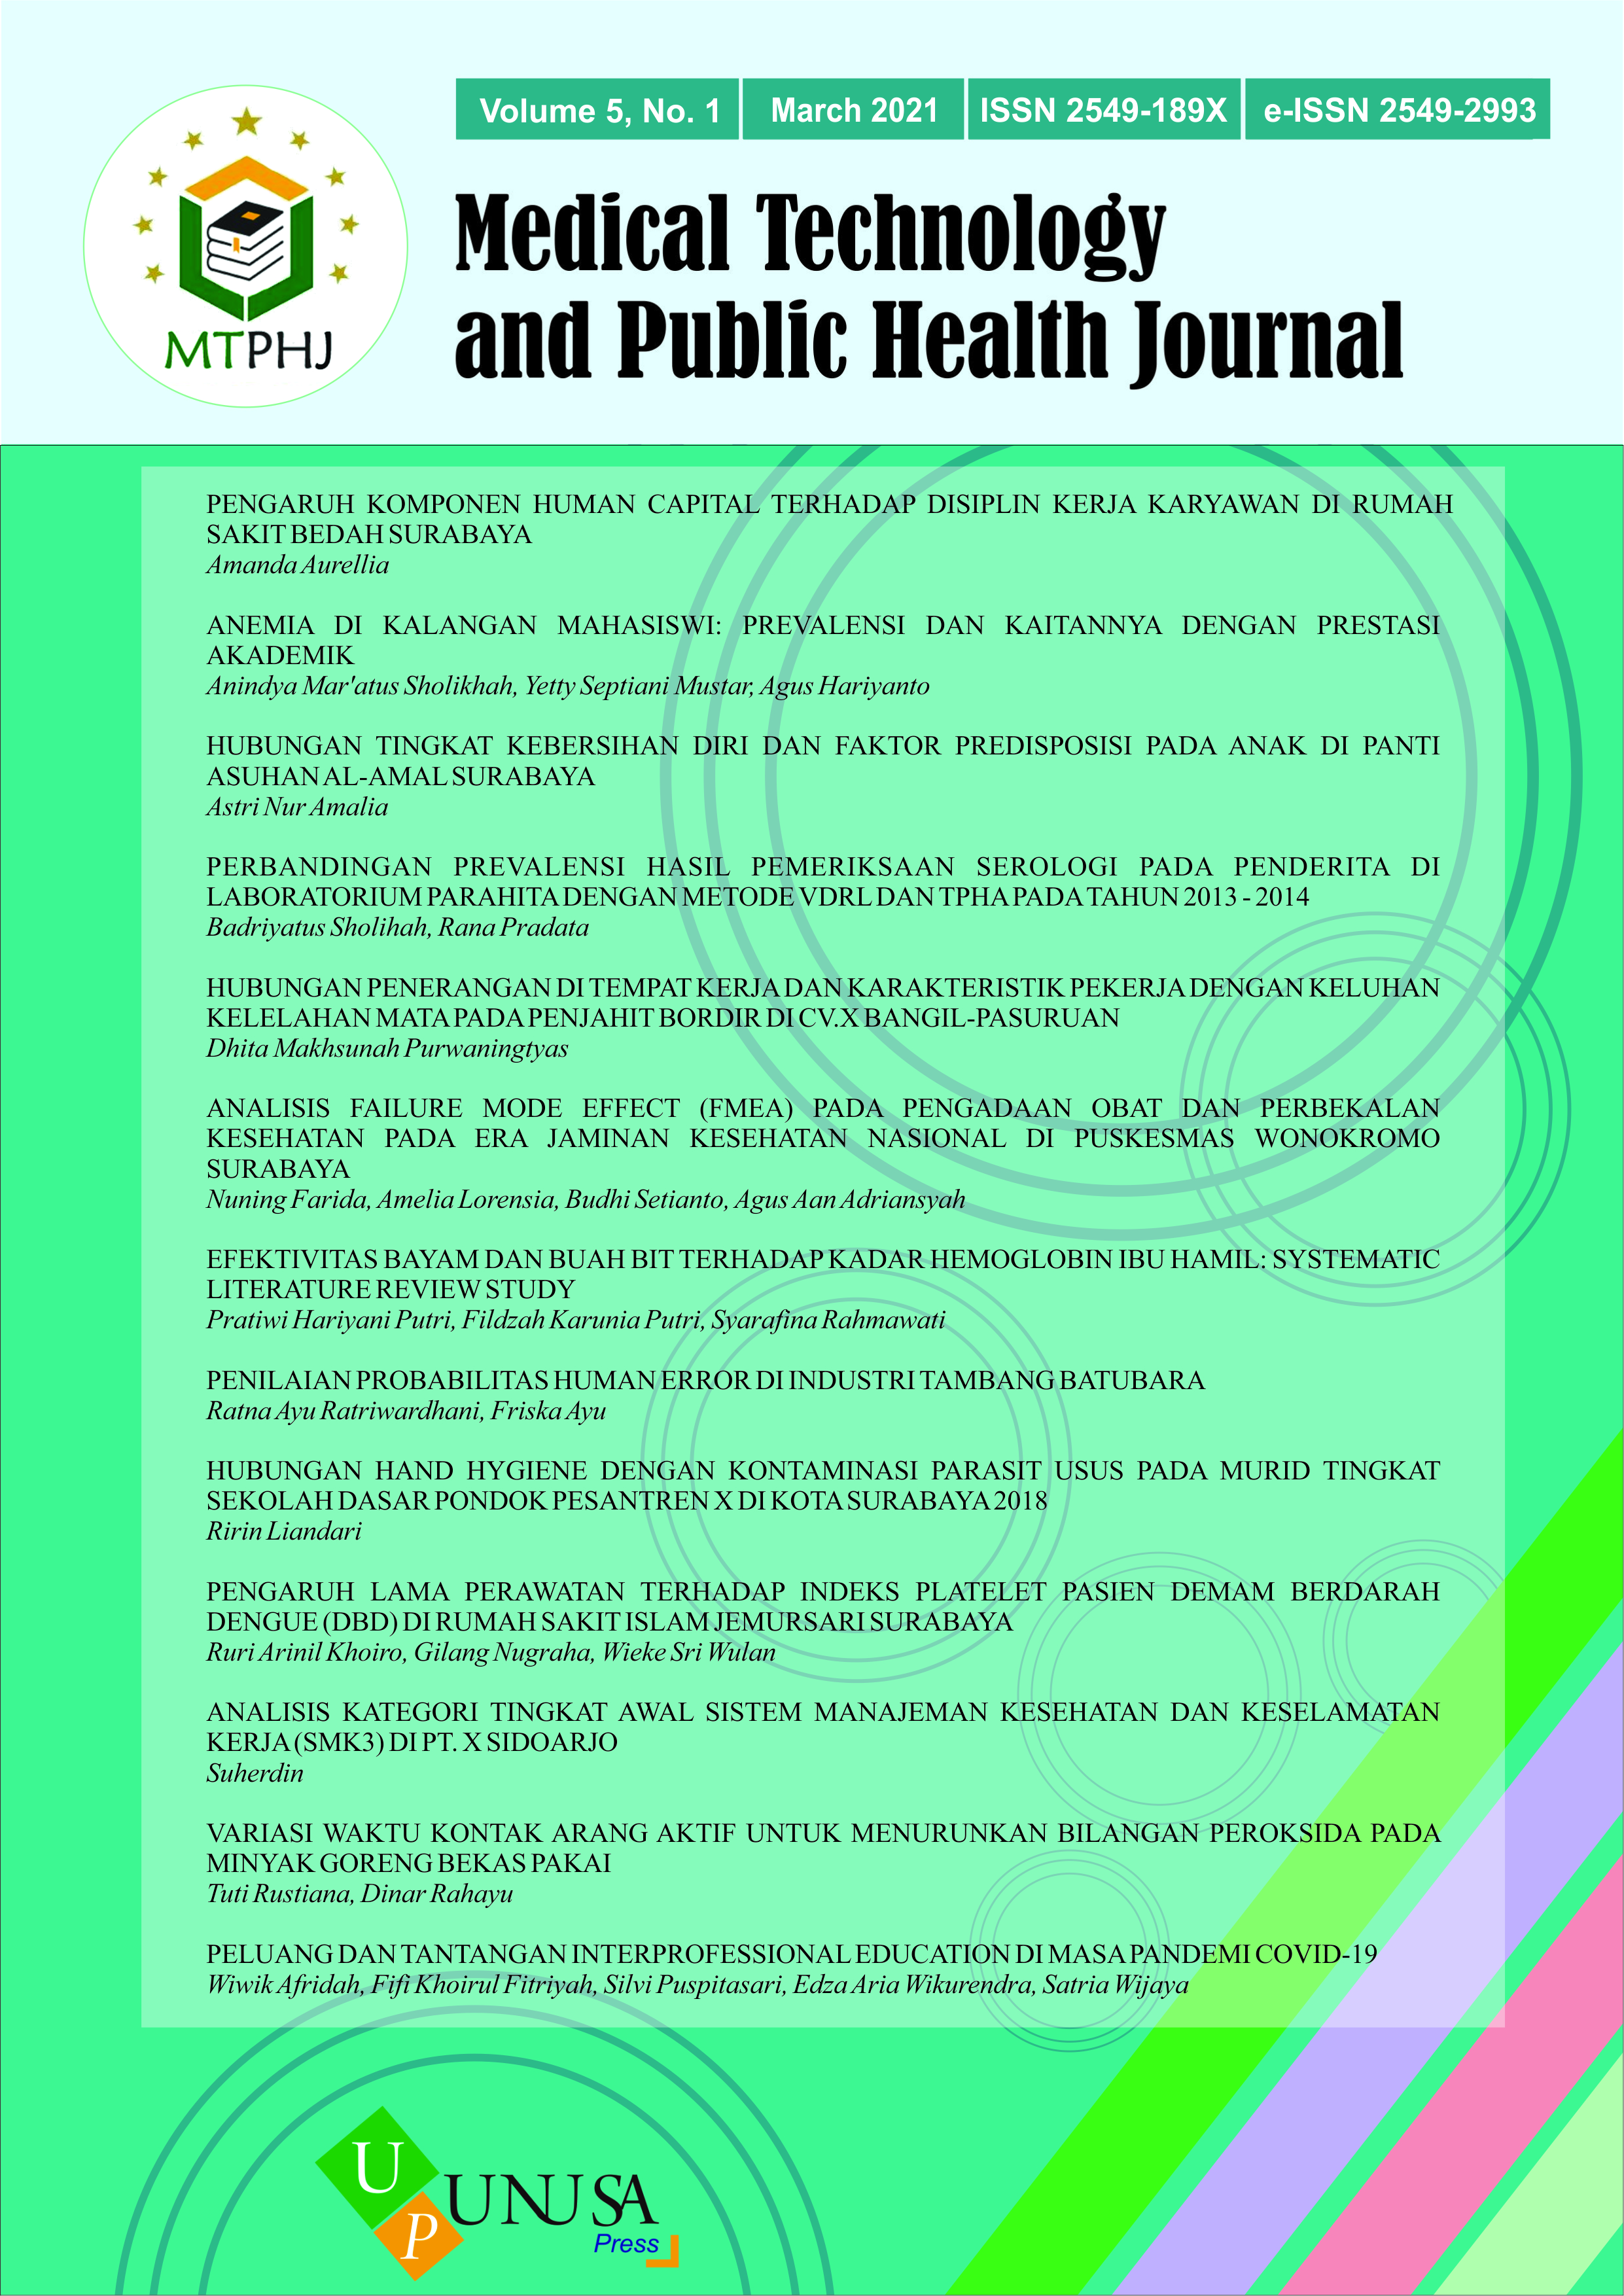 View Vol. 5 No. 1 (2021): Medical Technology and Public Health Journal March 2021